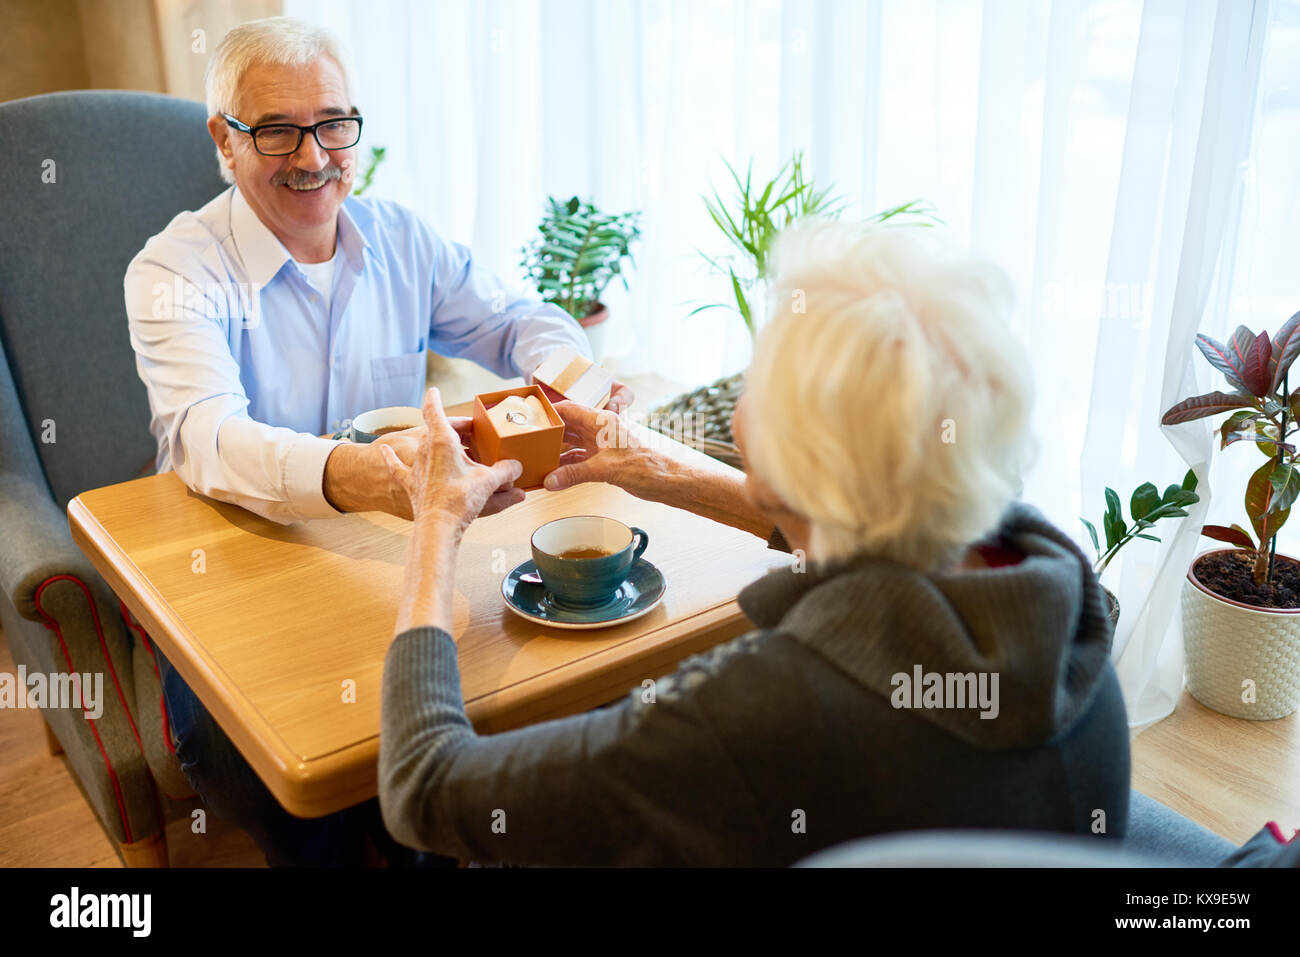 Marriage Proposal - Stock Image